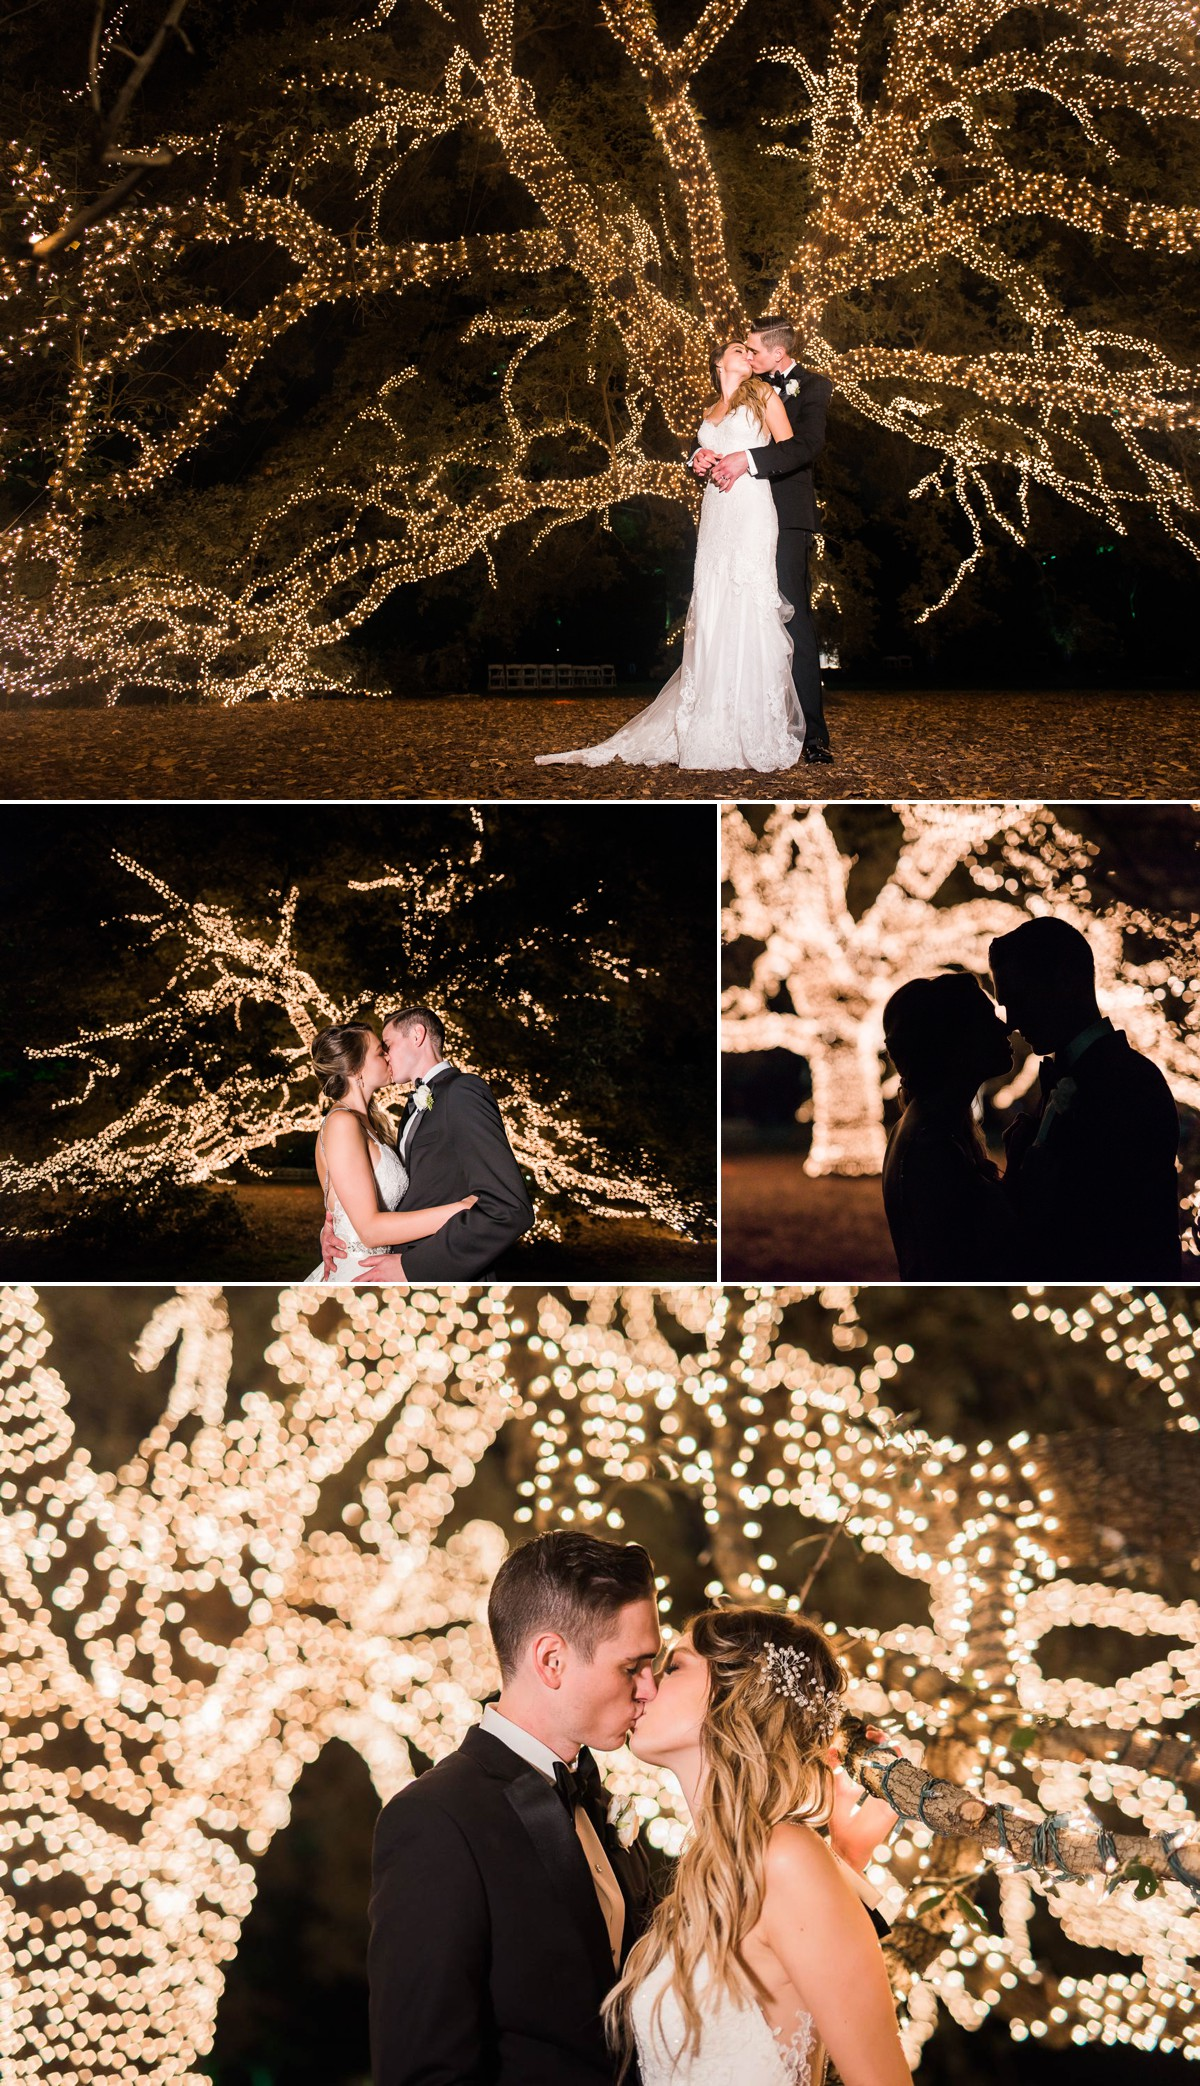 Manor House Wedding at The Houstonian Hotel Bride and Groom Outdoor Tree Portraits Night time